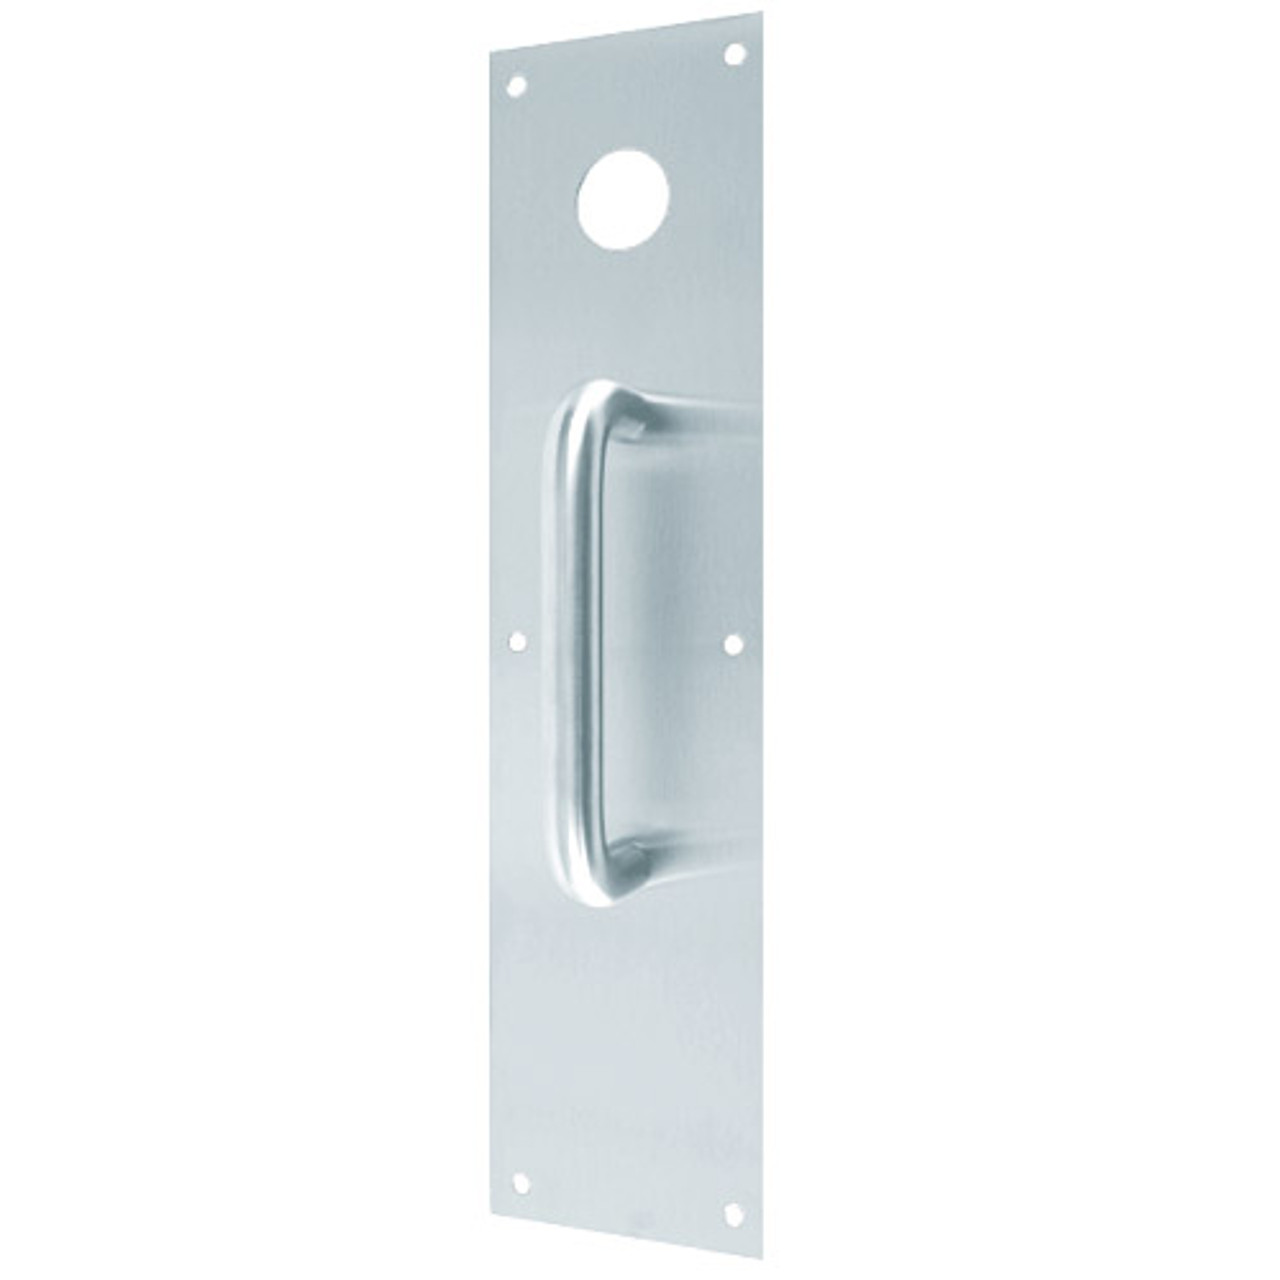 CFC7015-629 Don Jo Pull Plates with Holes in Bright Stainless Steel Finish